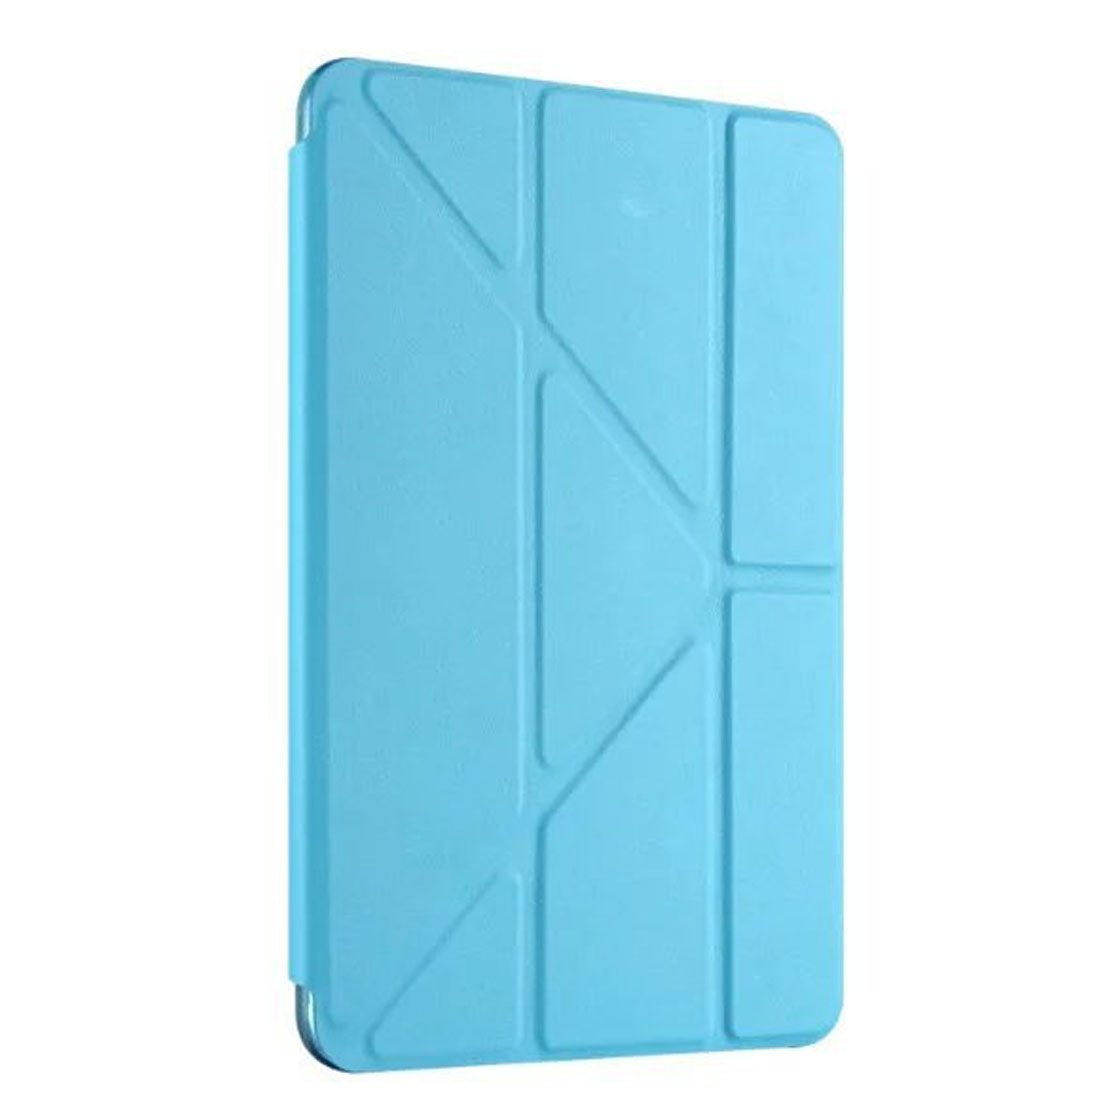 Etmakit Hot Ultra Thin Stand Design TPU Soft case For ipad 4 3 2 Cover Colorful Flip Smart Cover Smart Table Case cover case for ipad 2 3 4 golp ultra slim pu leather flip case cover soft tpu back magentic smart cover for ipad 2 3 4 a1430 a1460